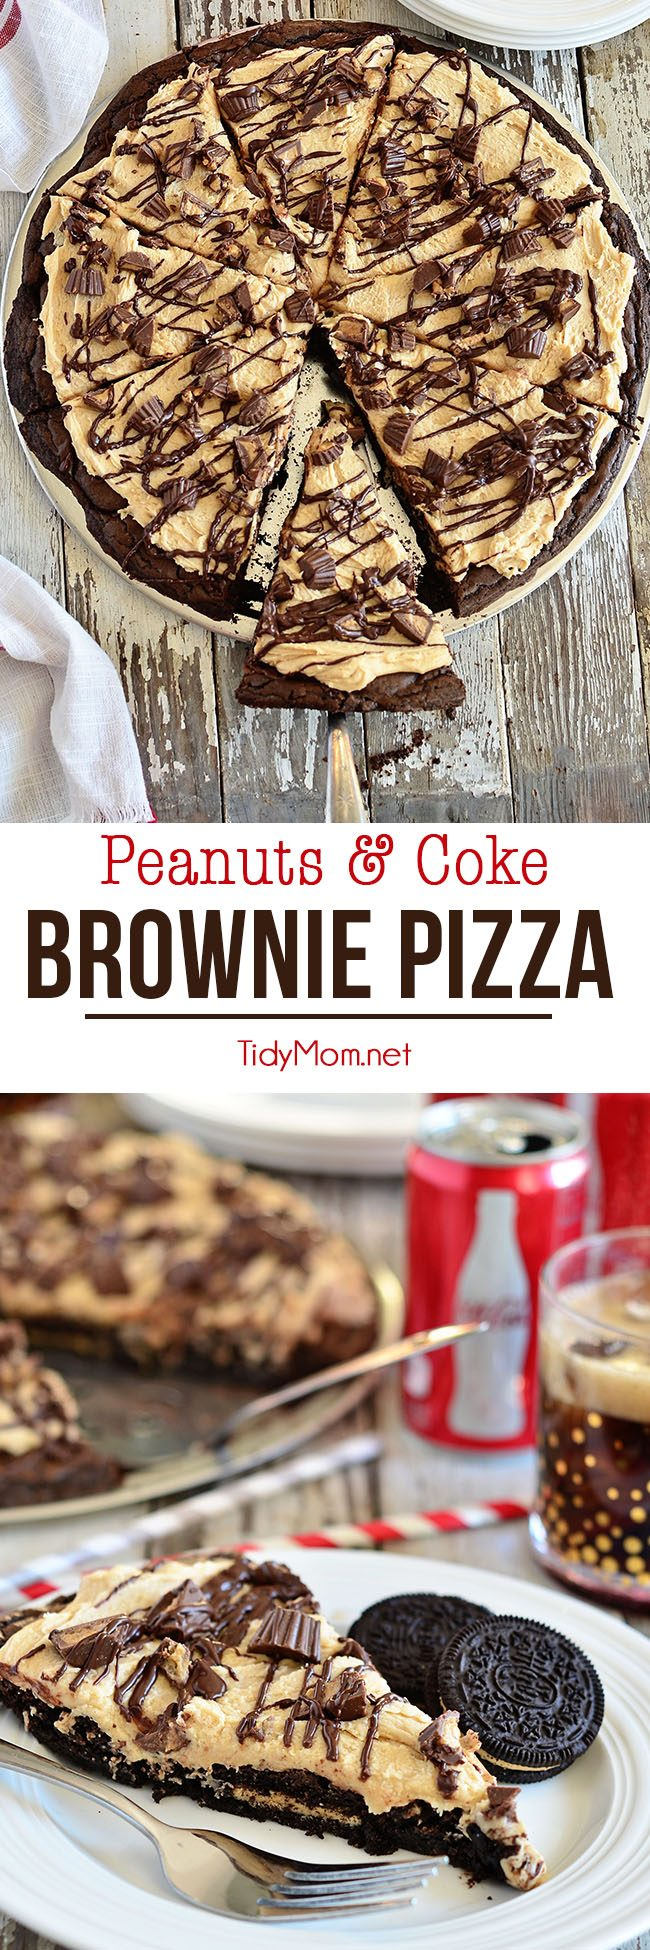 Brownie Pizza photo collage